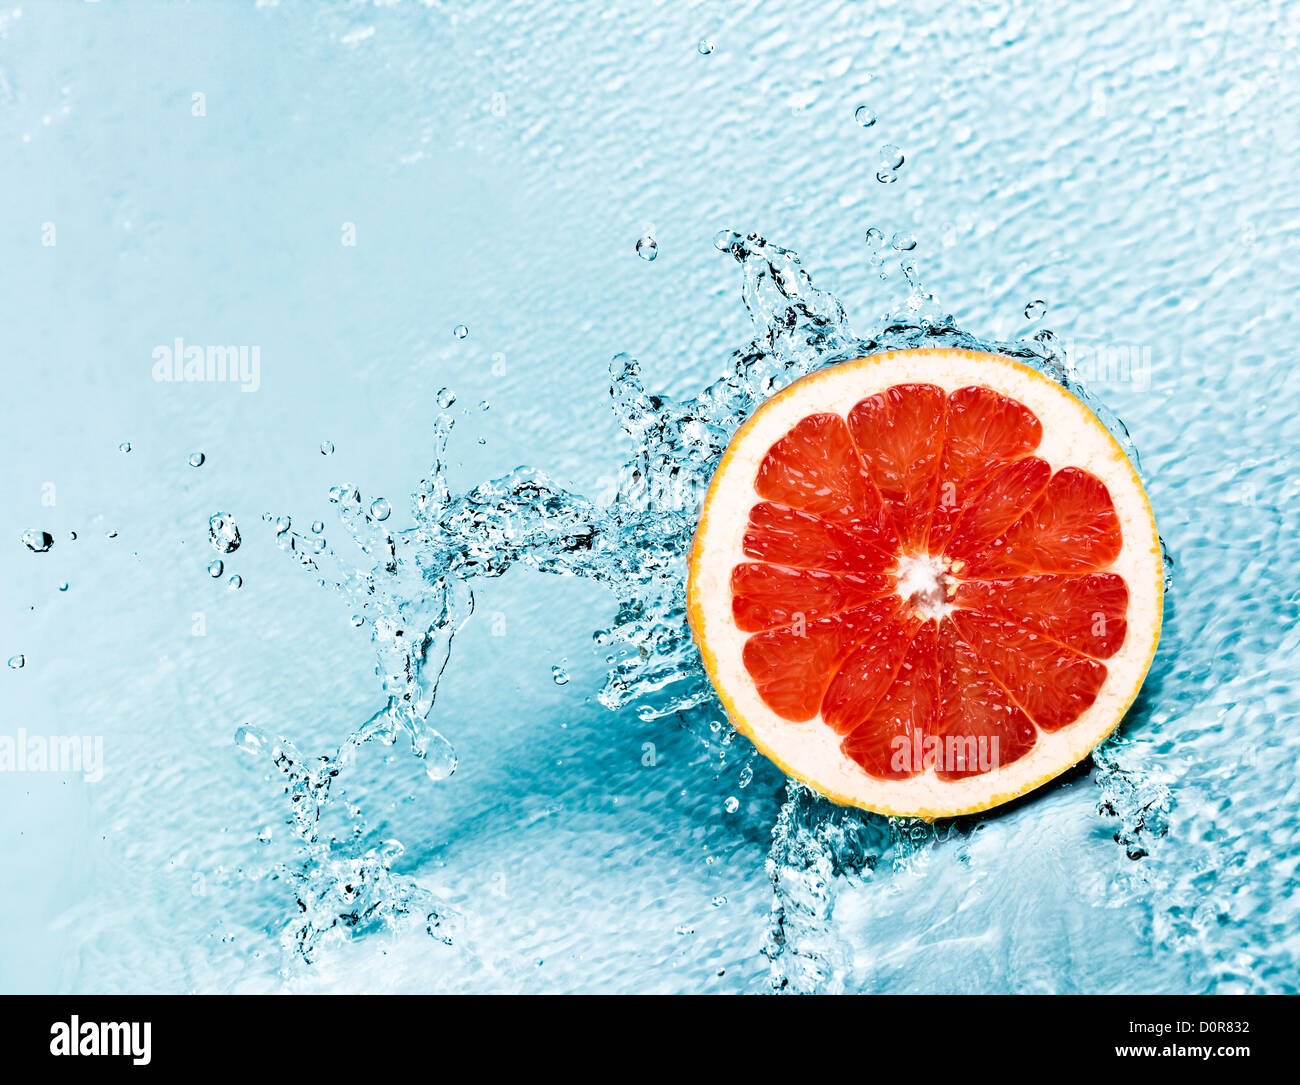 grapefruit and water - Stock Image